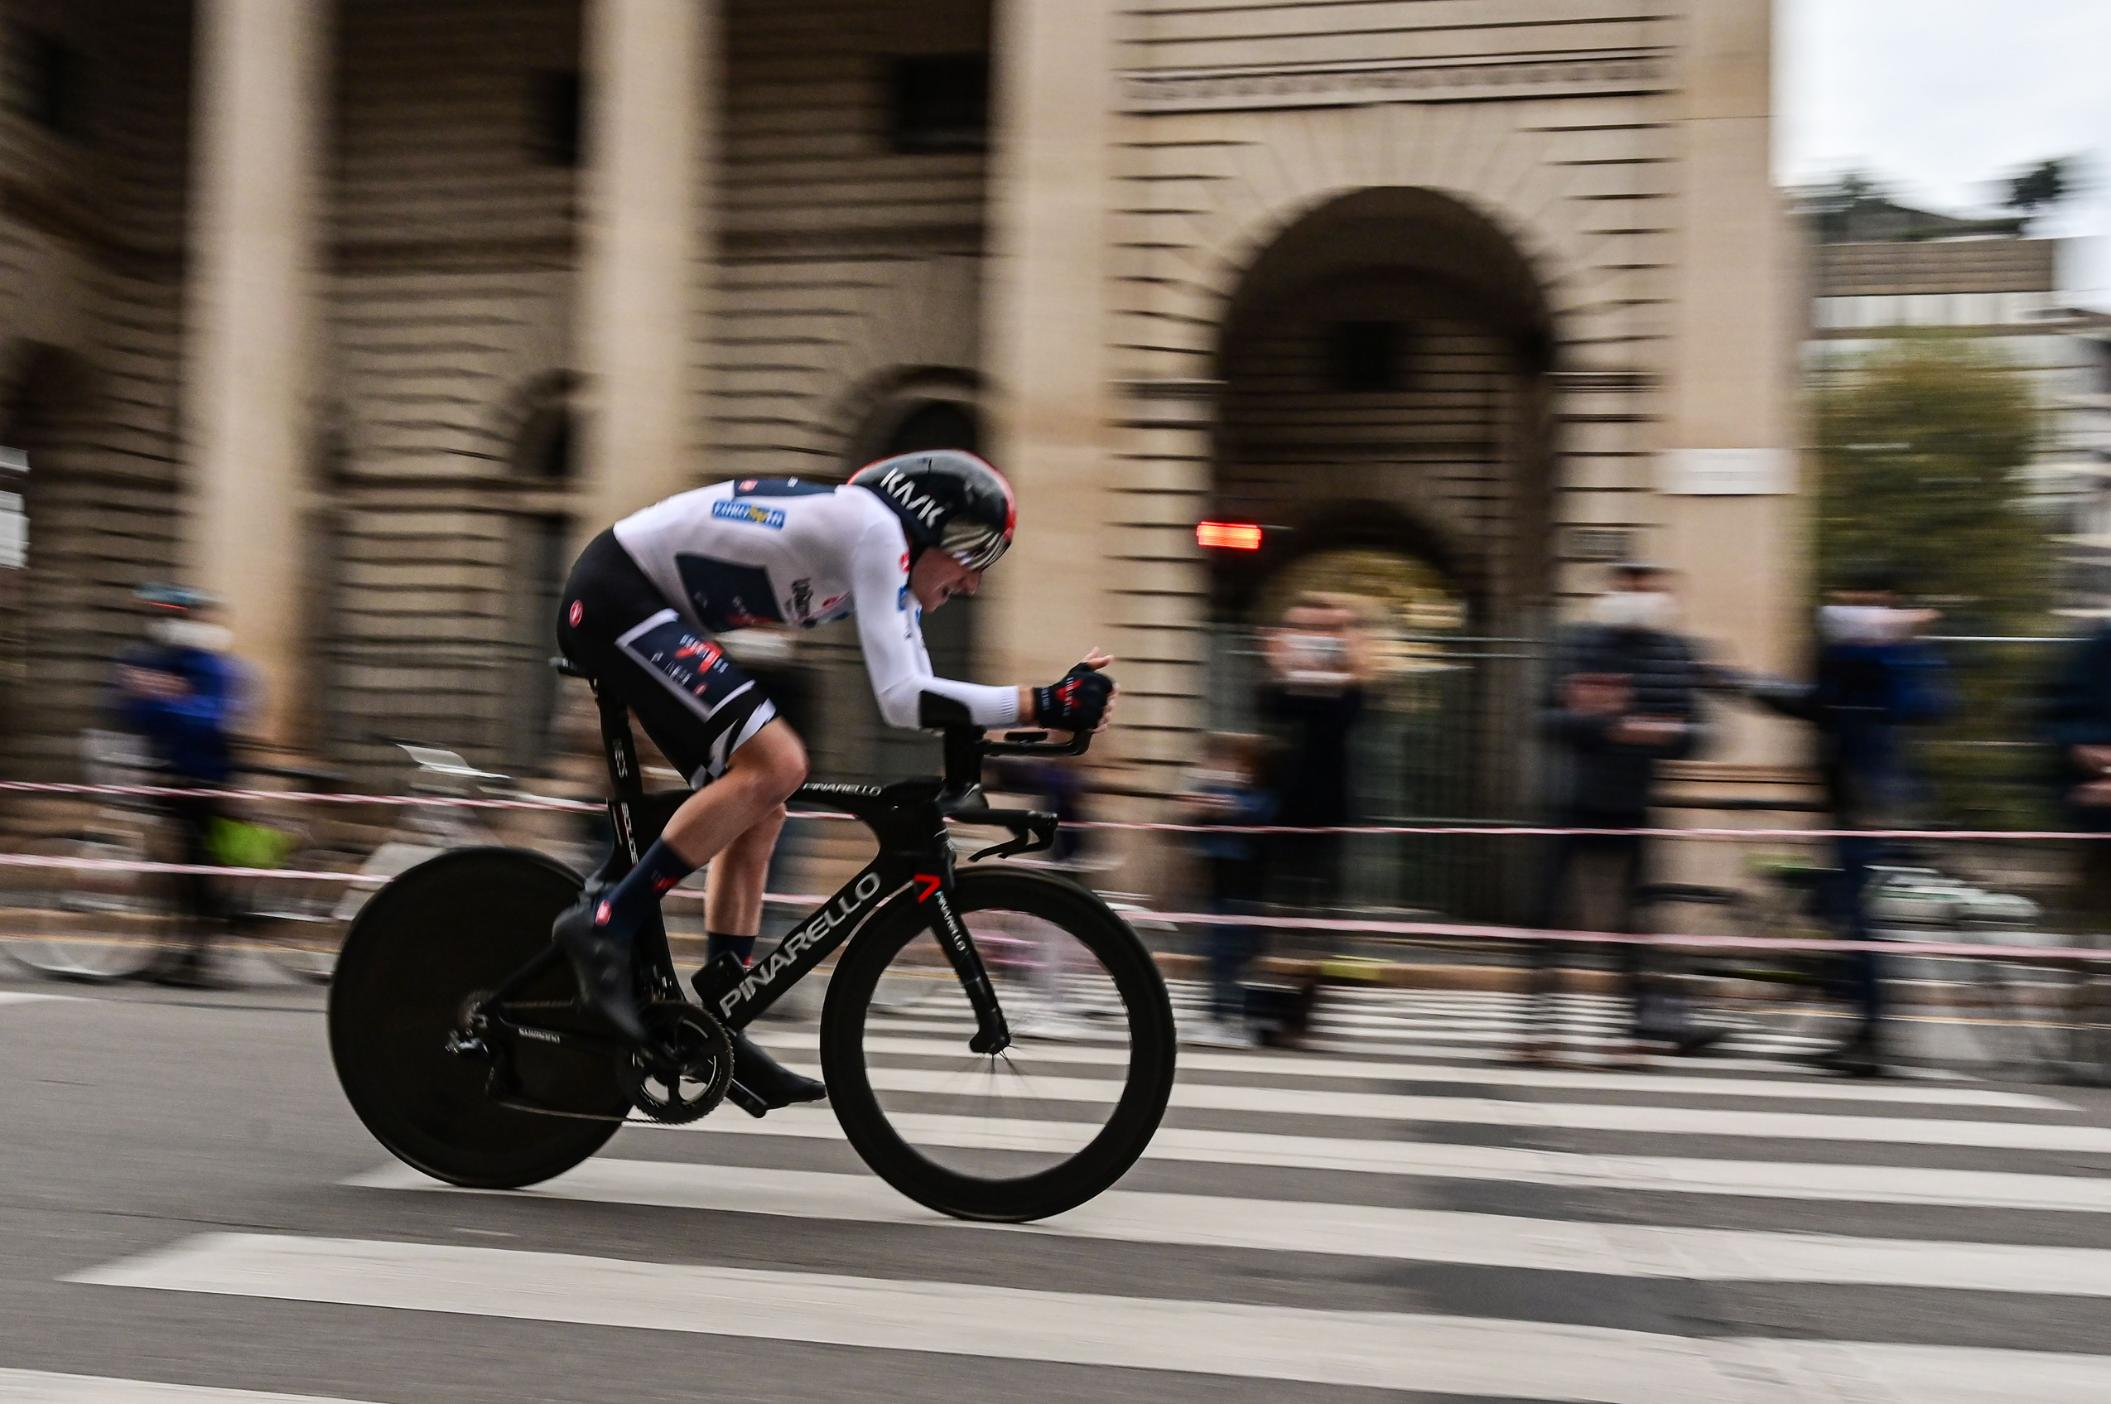 Tao Geoghegan Hart wins Giro d'Italia after thrilling conclusion in Milan